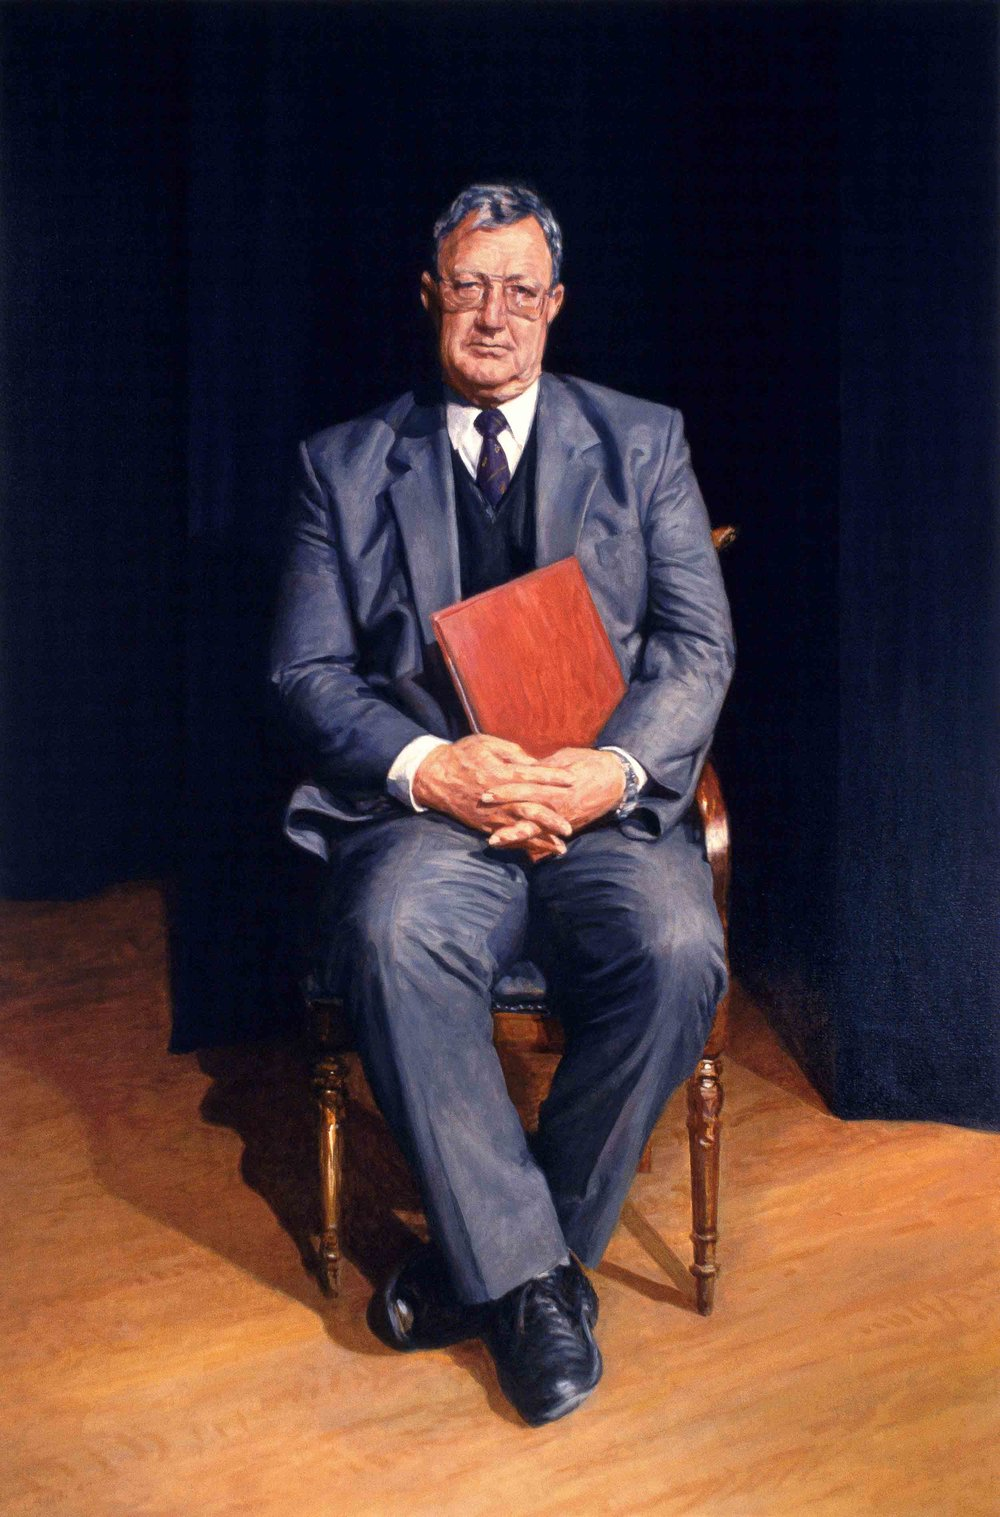 Mr Ralph Imberger (1997)